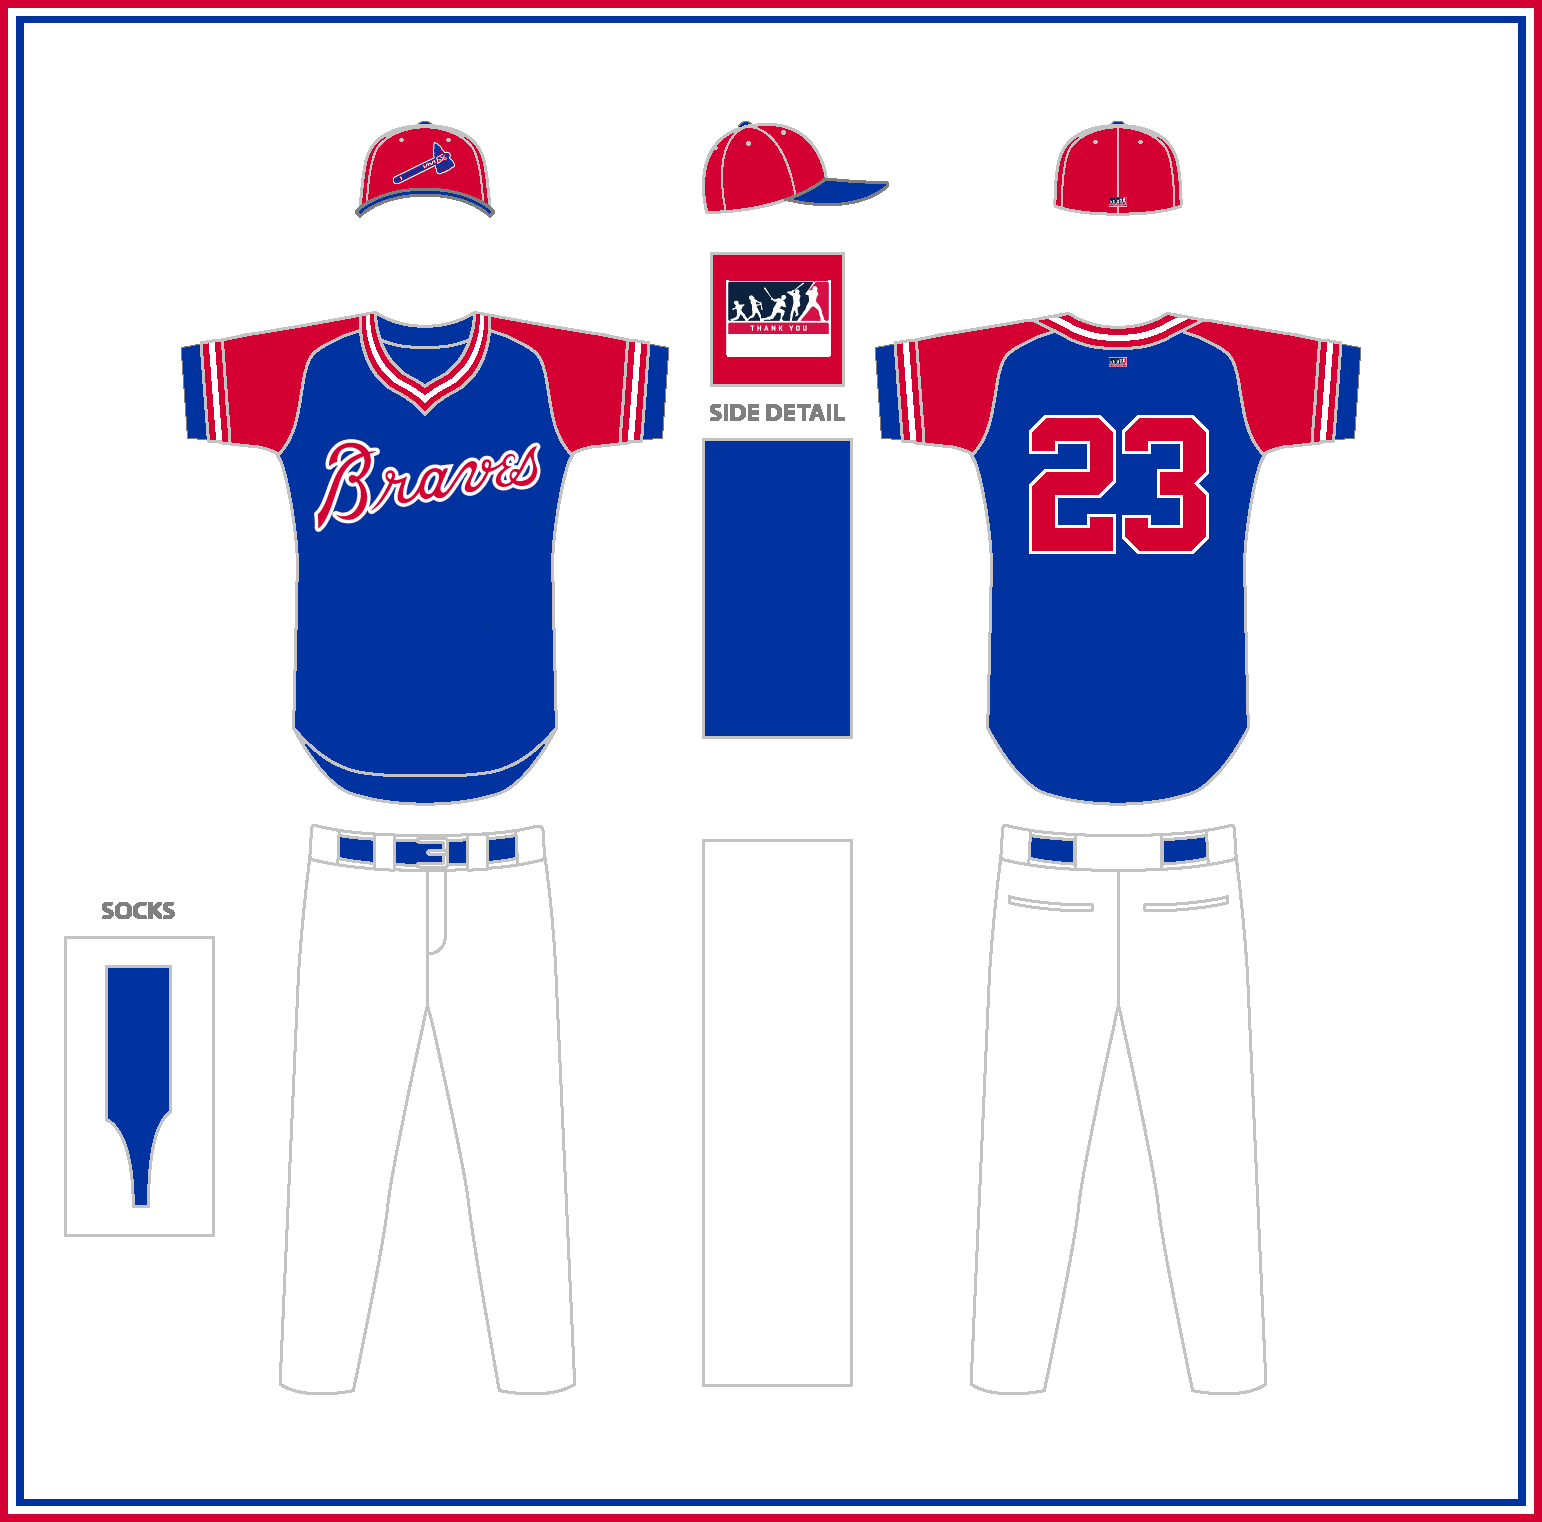 Braves_w_outline.png